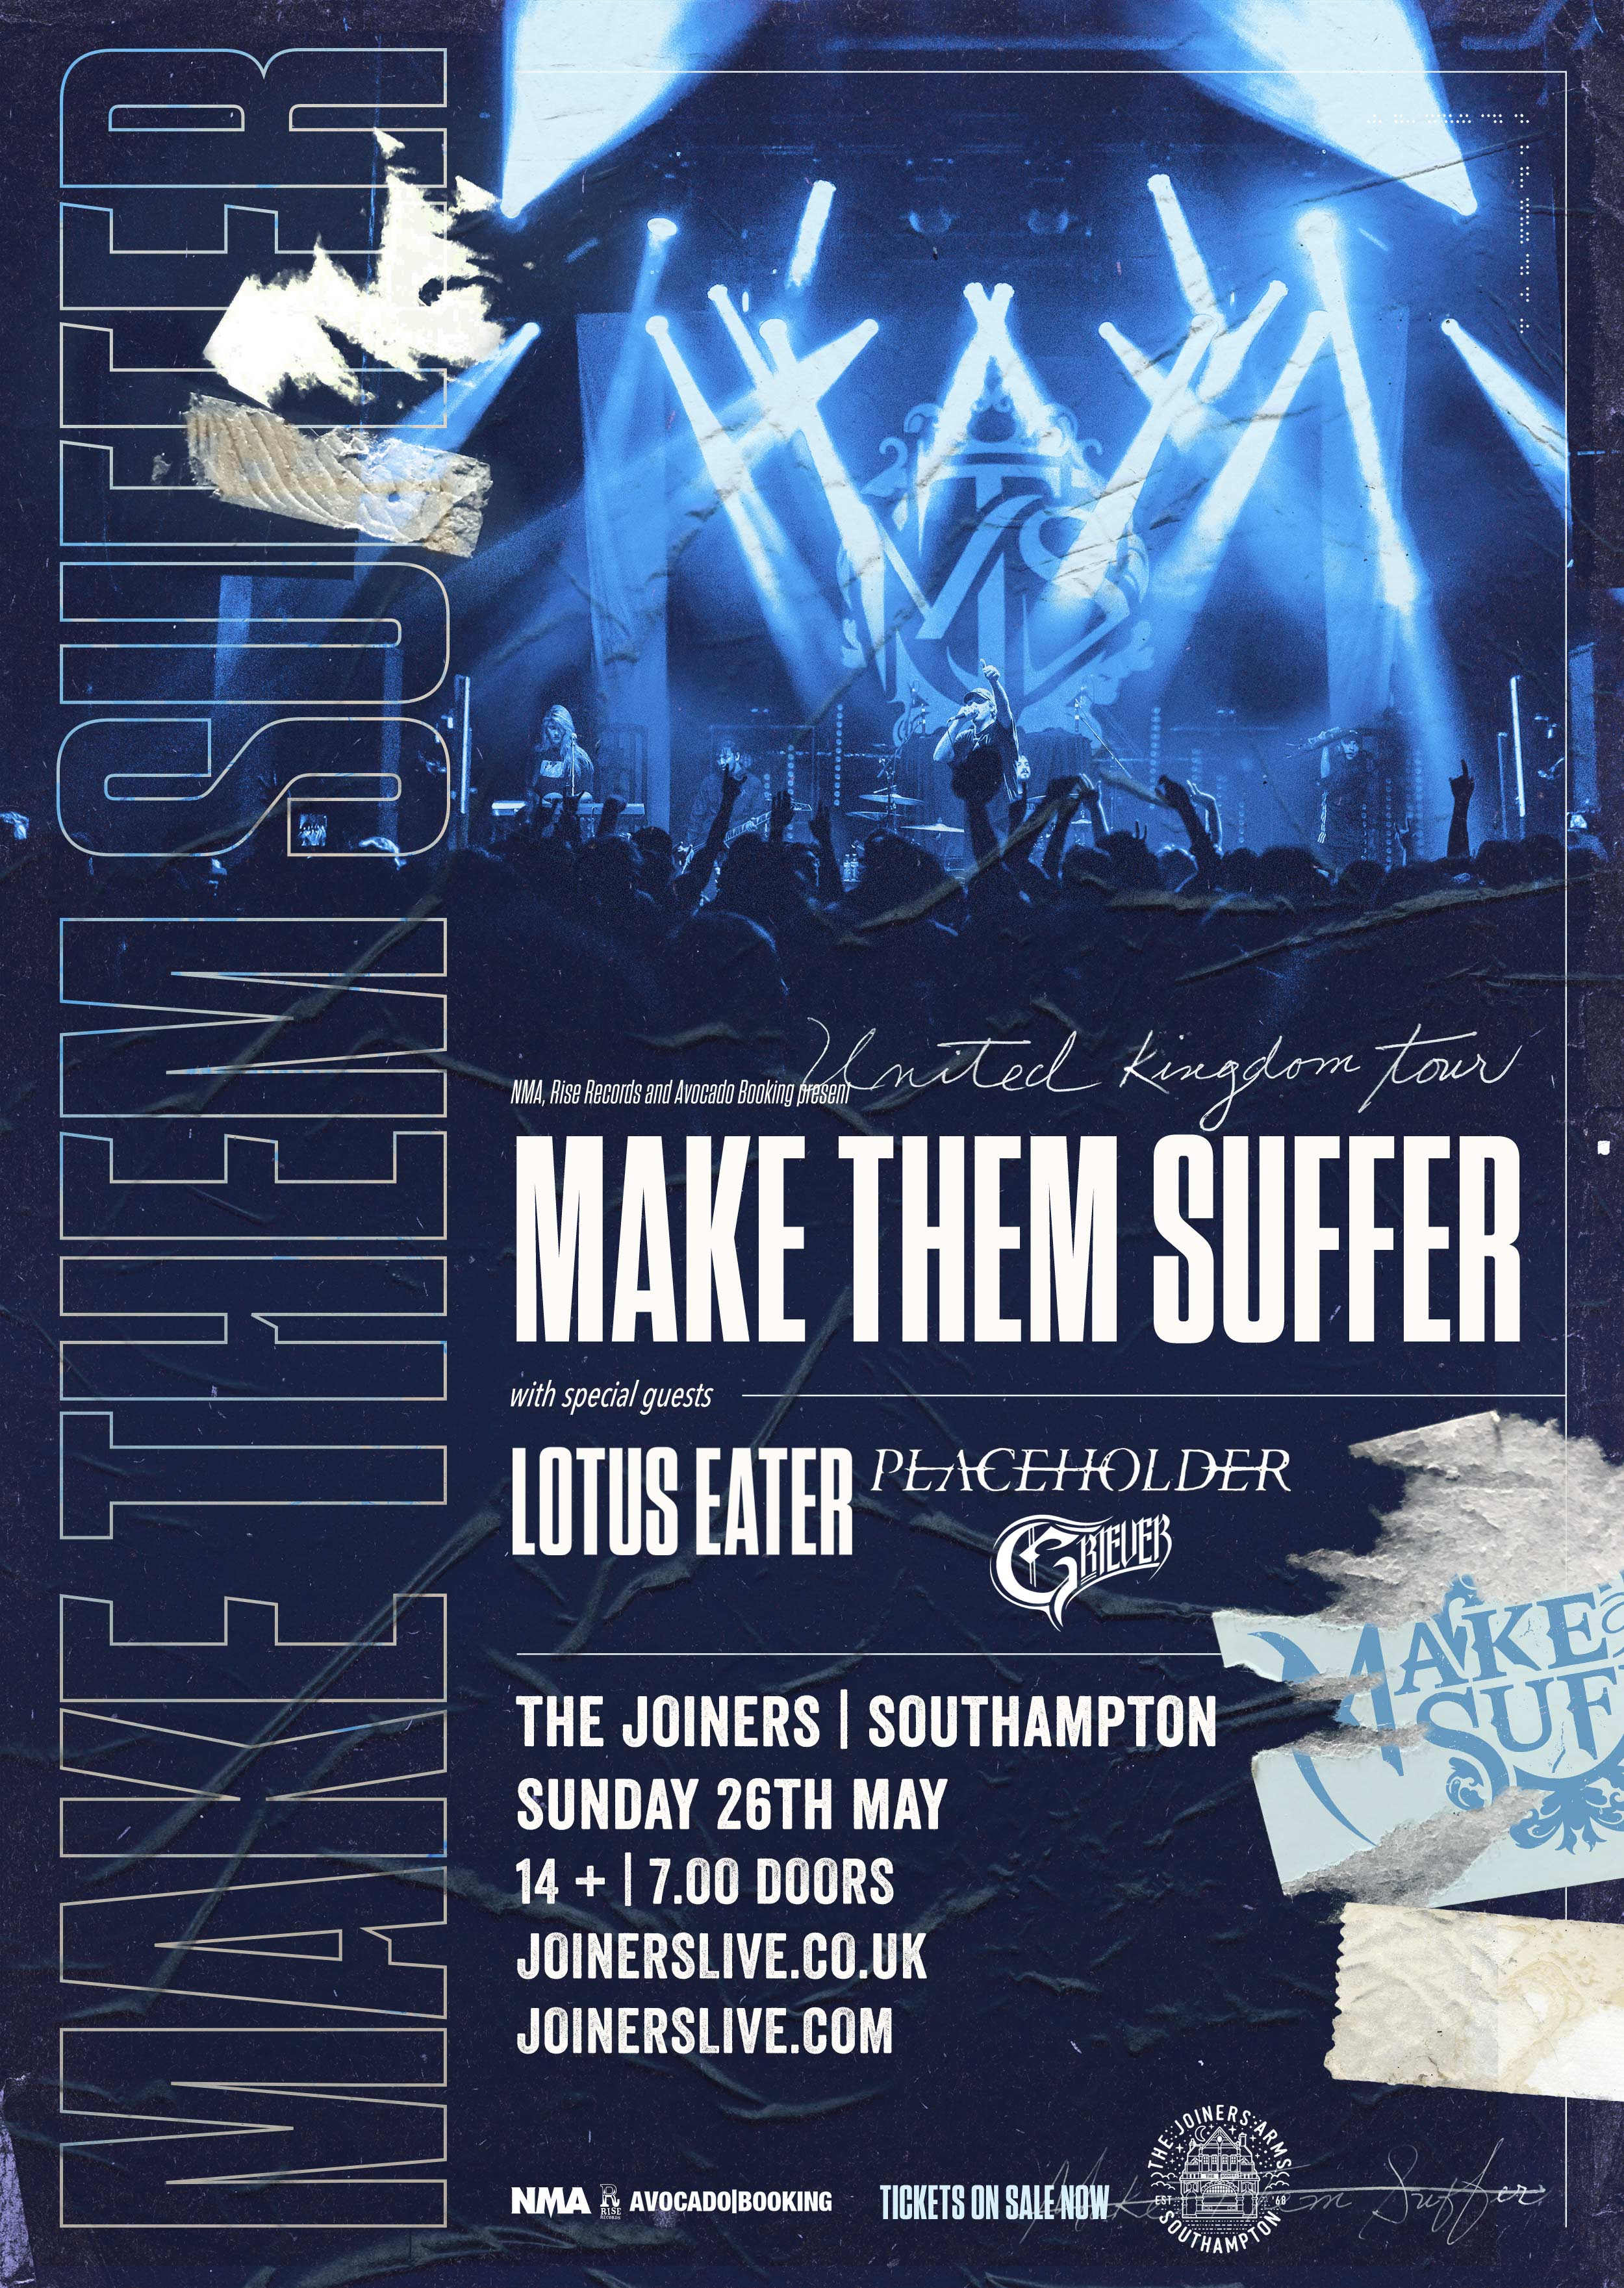 MAKE THEM SUFFER + LOTUS EATER